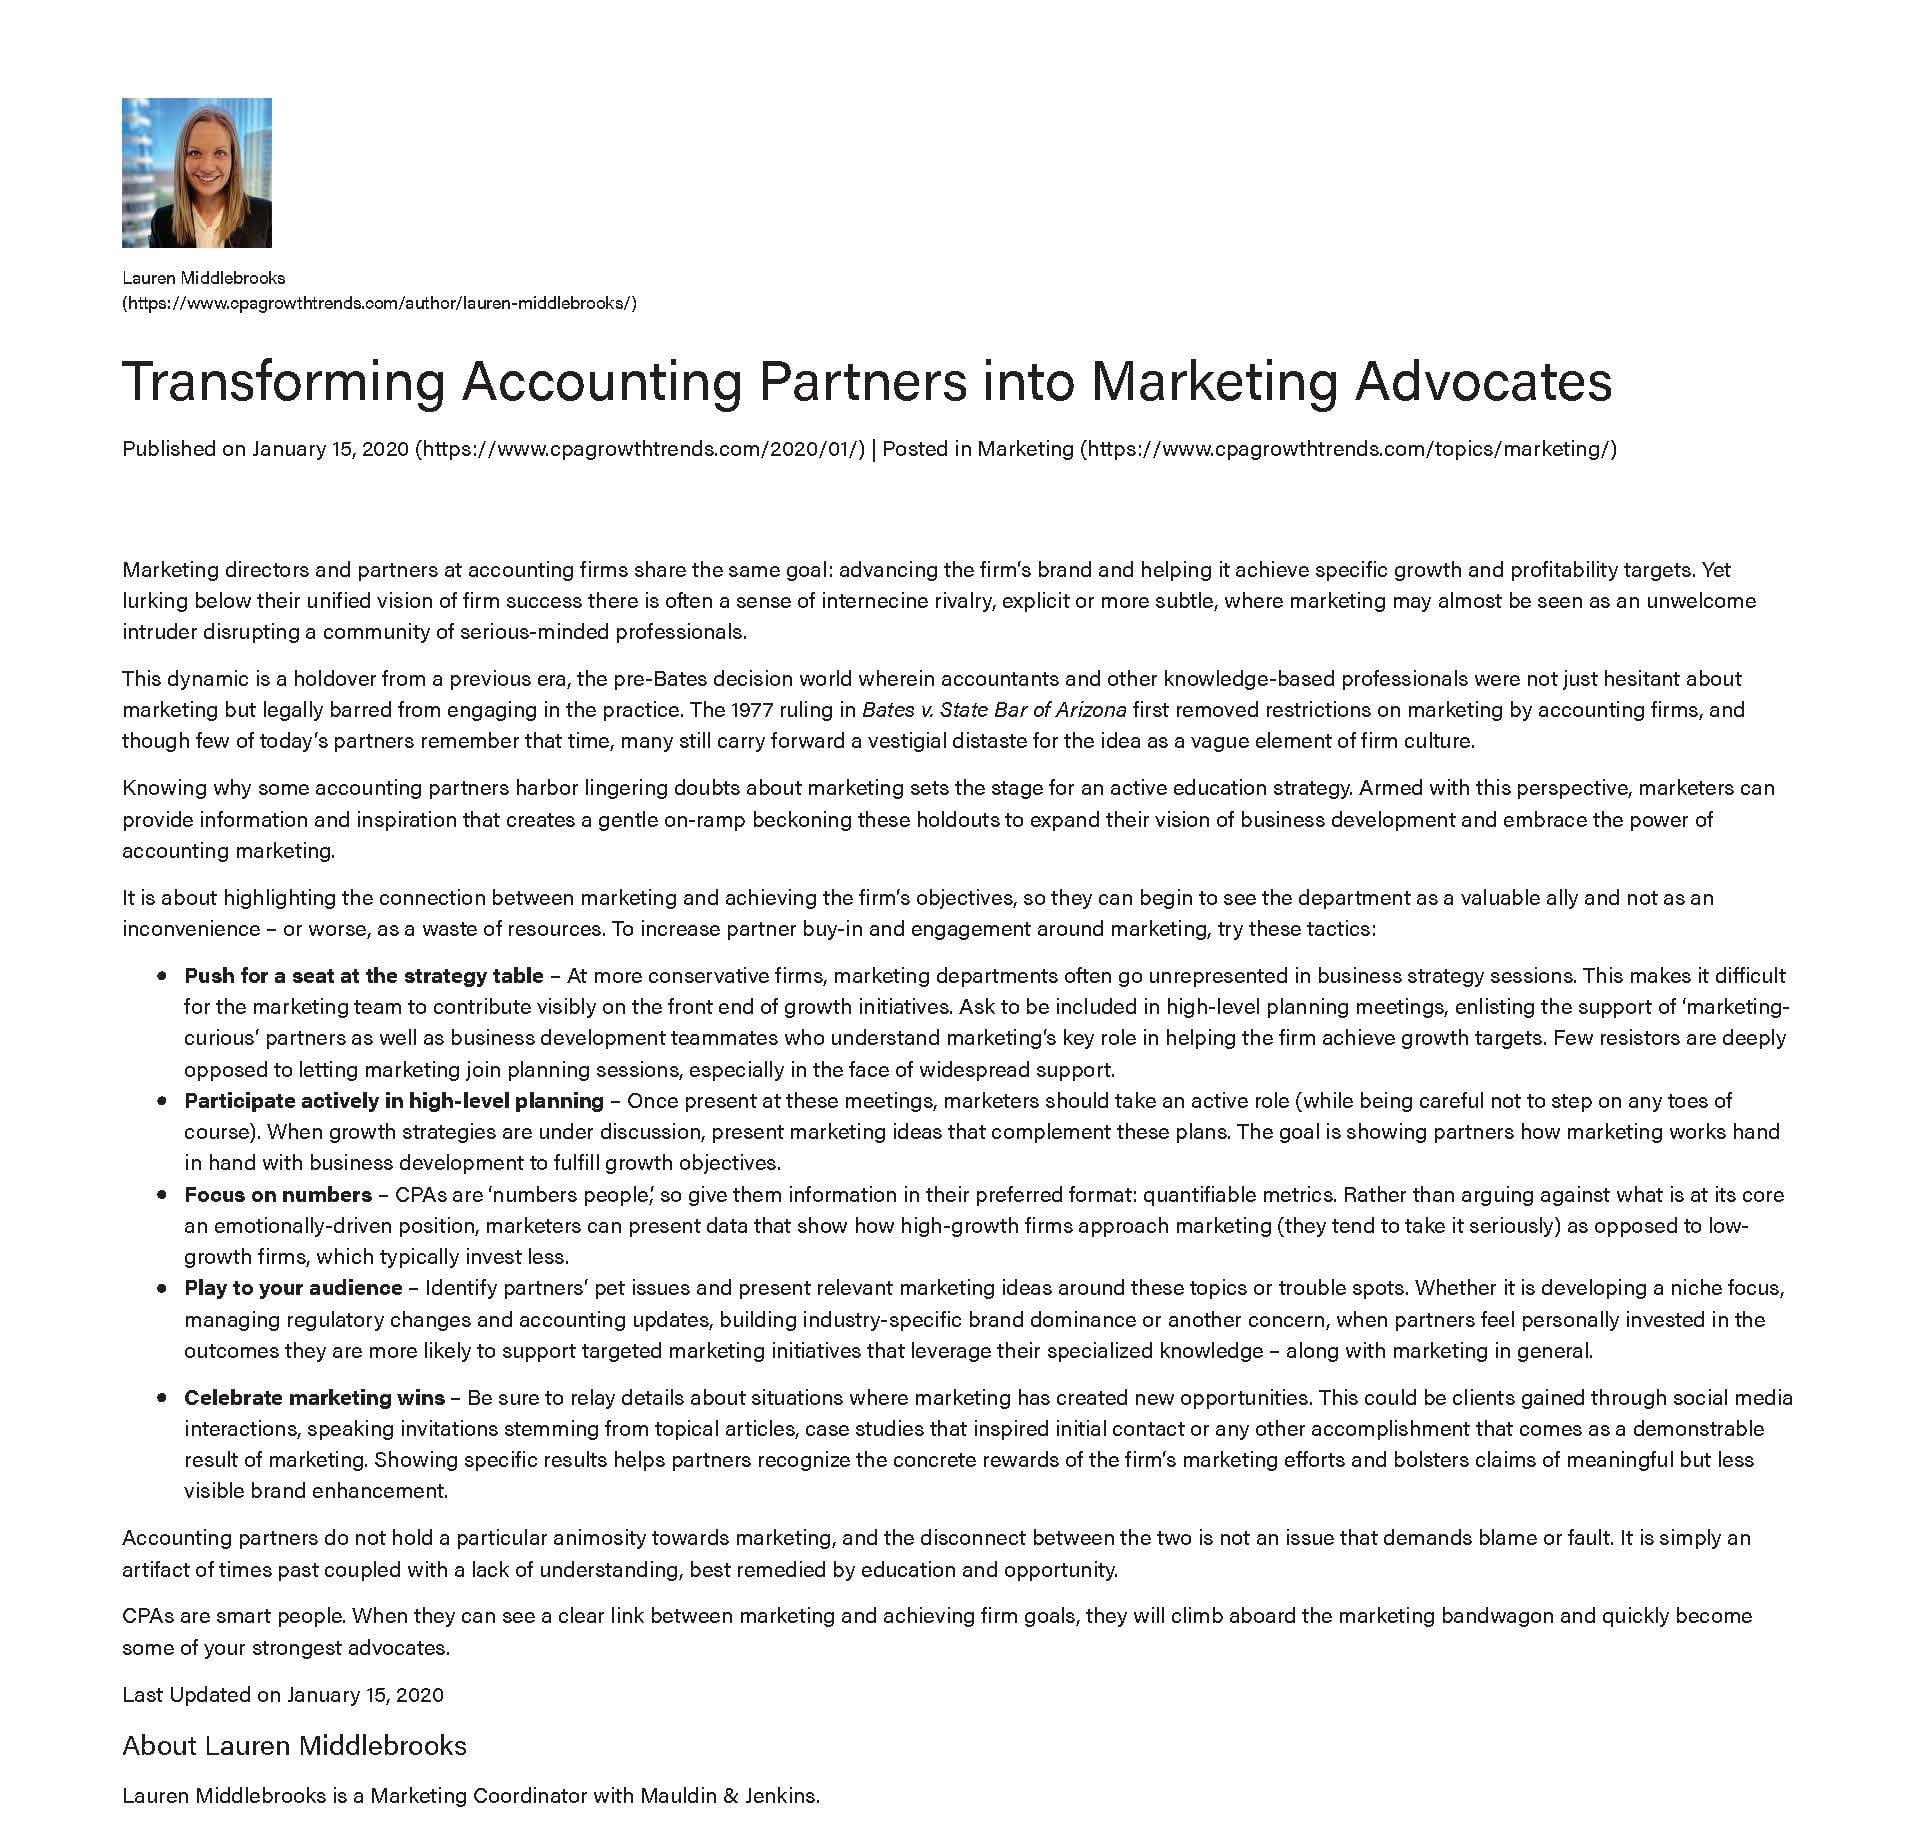 Mauldin & Jenkins Transforming Accounting Partners into Marketing Advocates lauren middlebrooks